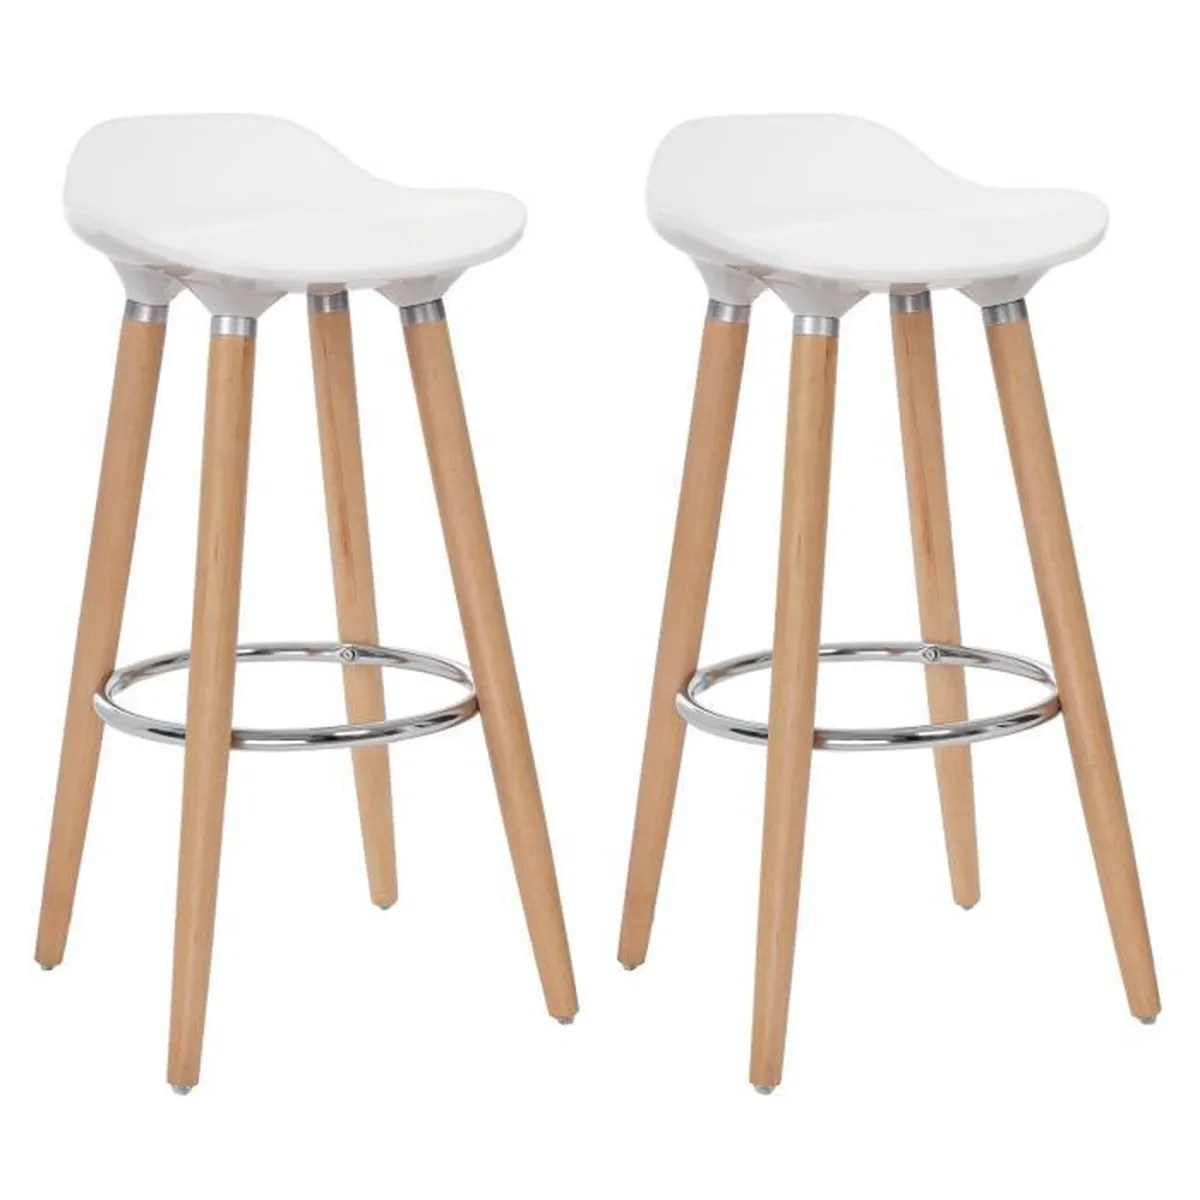 Songmics Lot De 2 Tabourets De Bar Stool Lot De 2 Tabourets De Bar Scandinave Hauteur 80 Cm Pieds En Bois